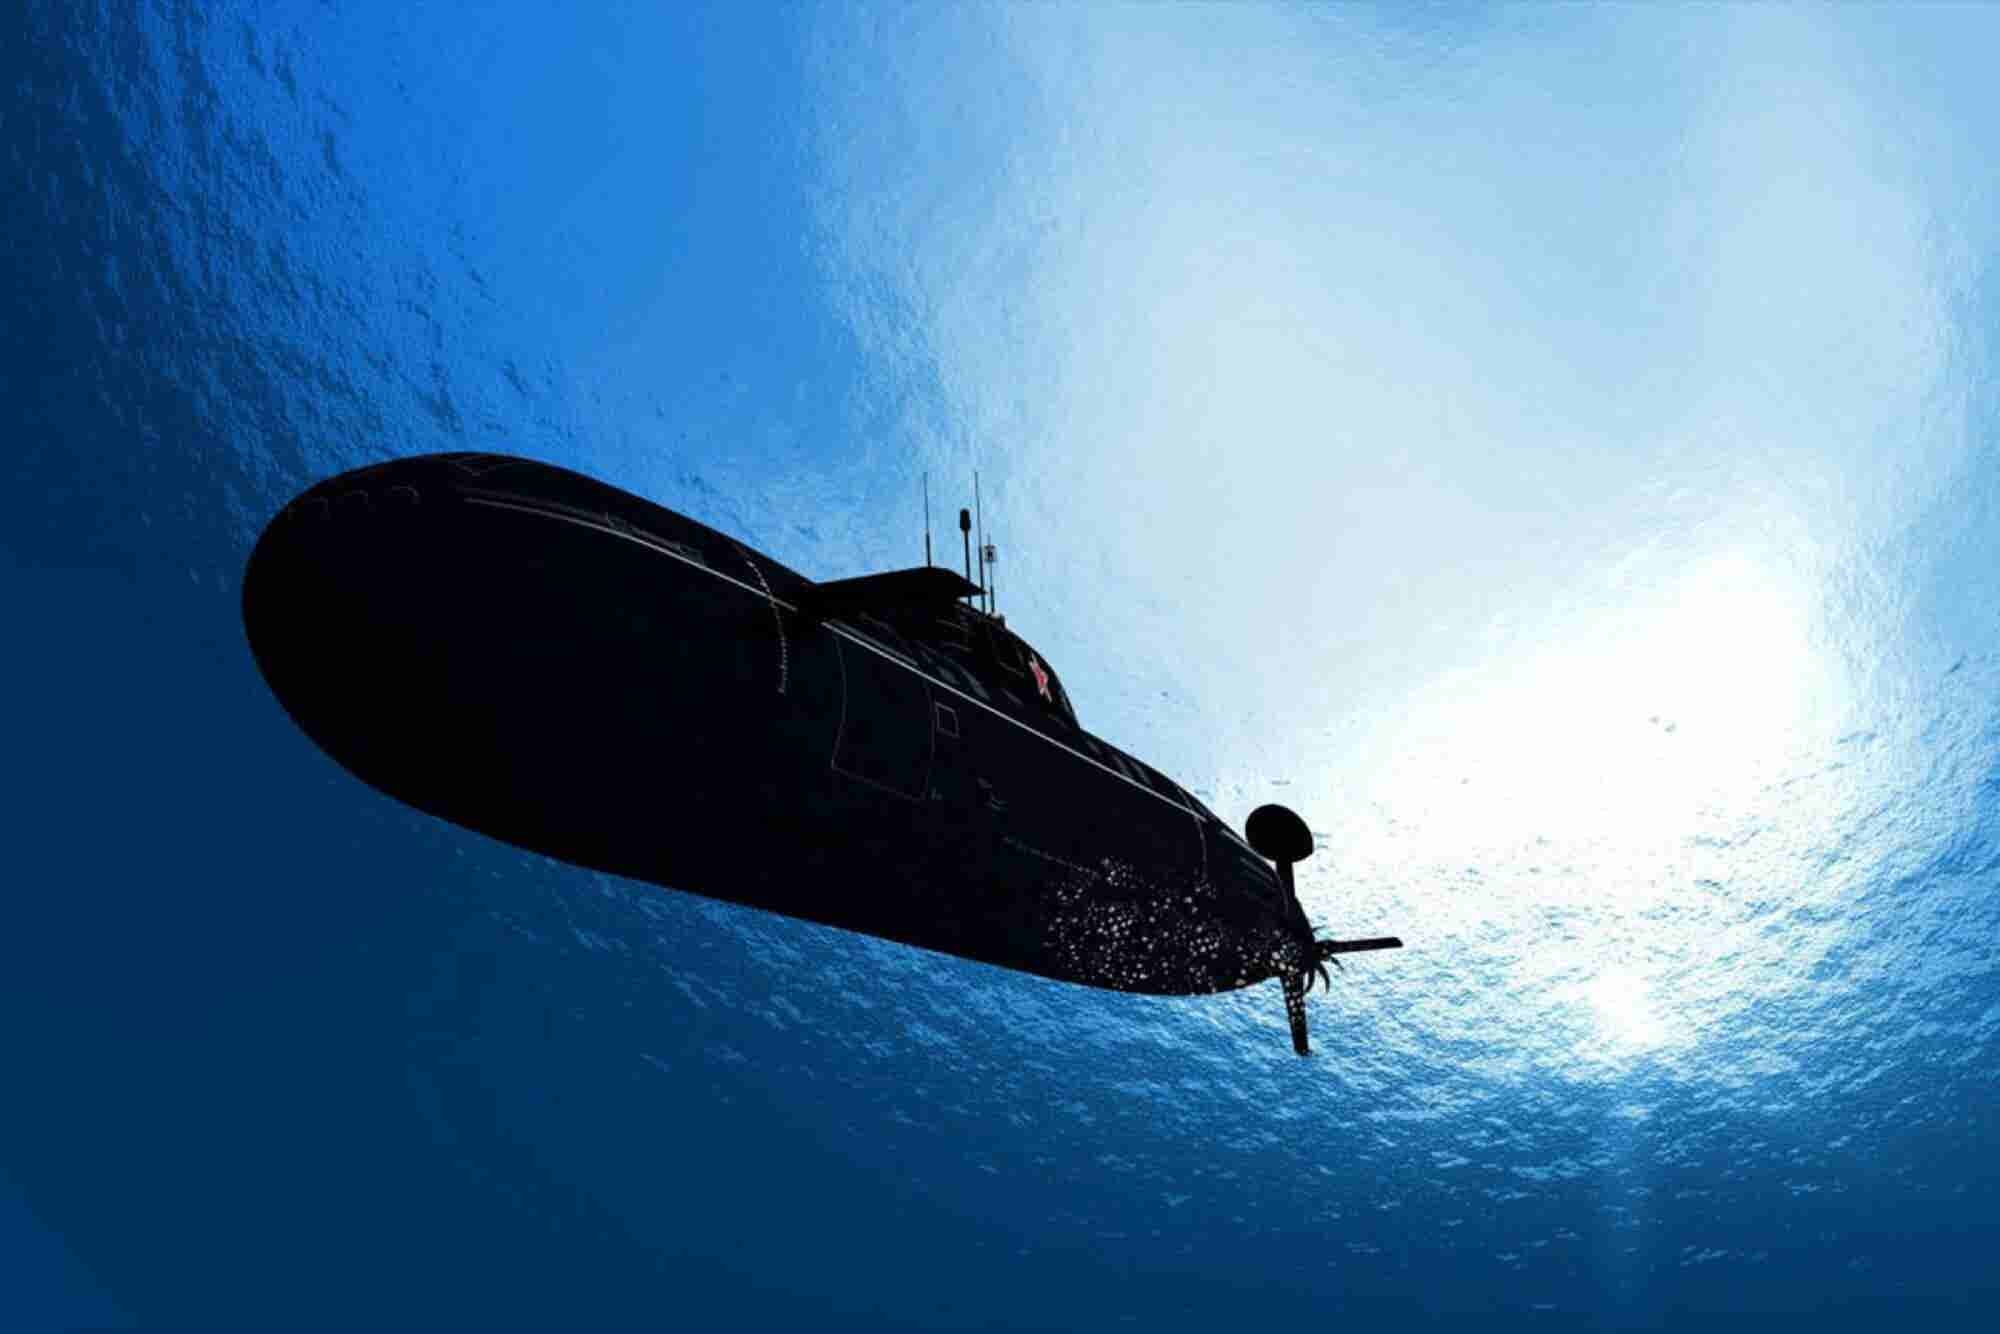 Whether at a Startup or on a Nuclear Submarine, Earn Your Leadership